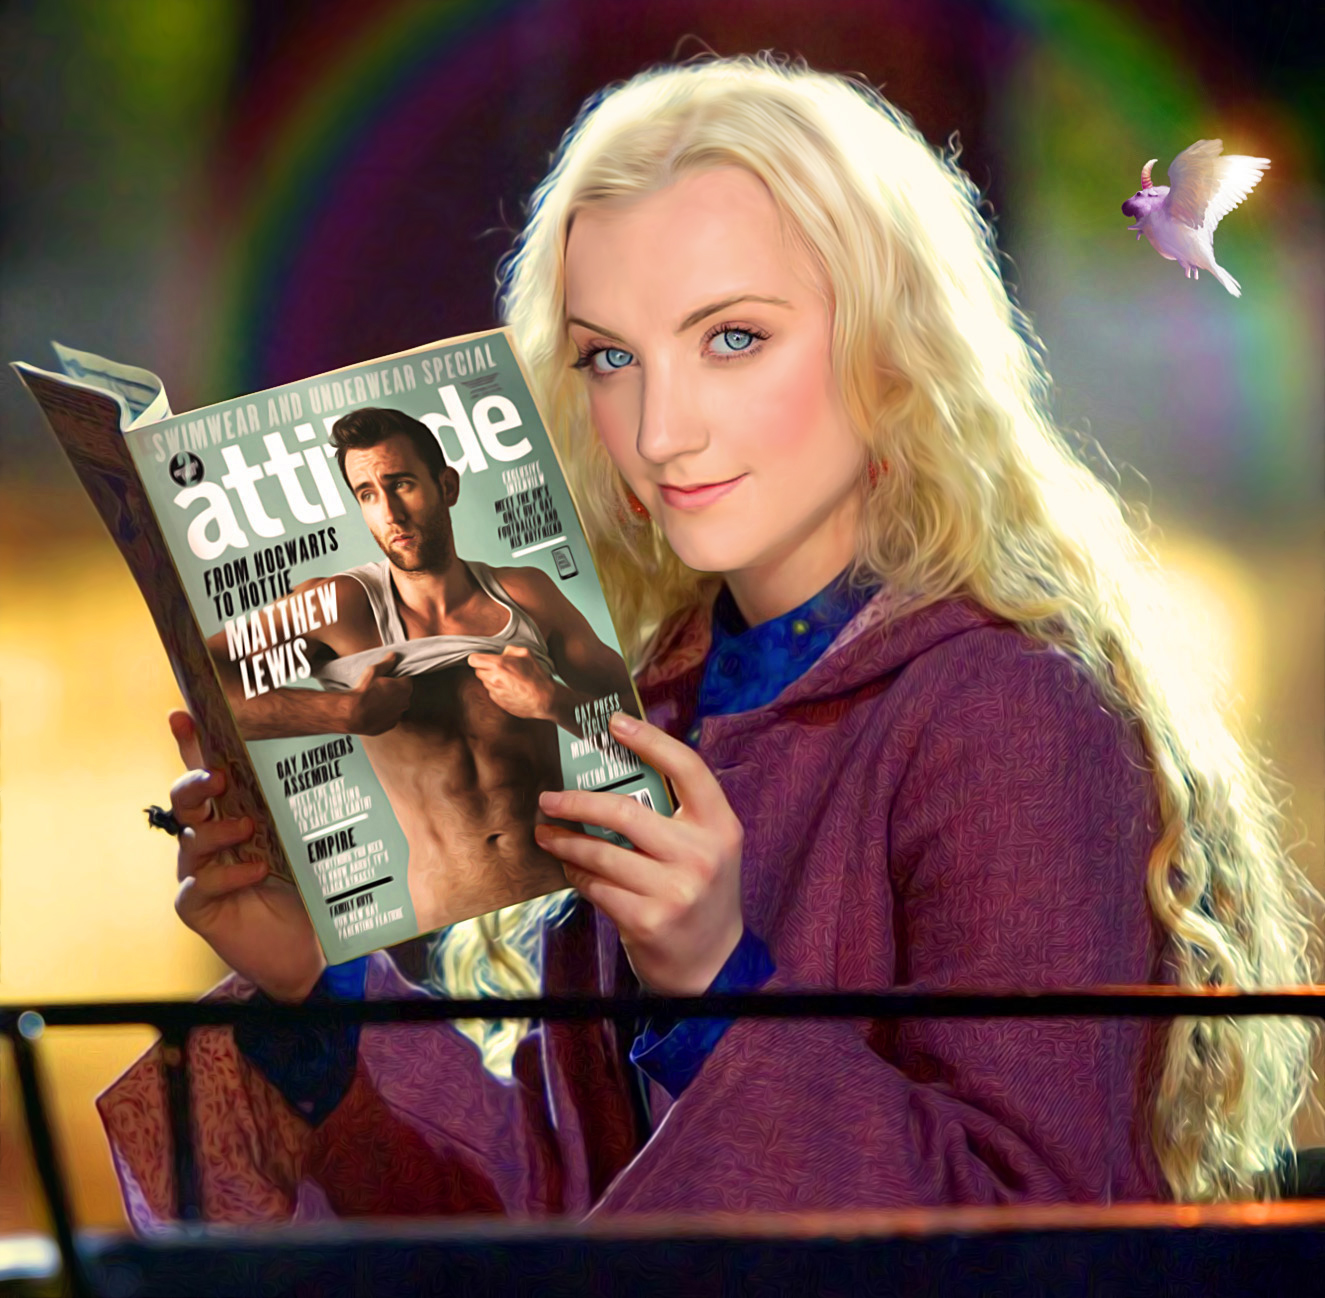 Luna Lovegood with muggle magazine by SaveUzz on DeviantArt